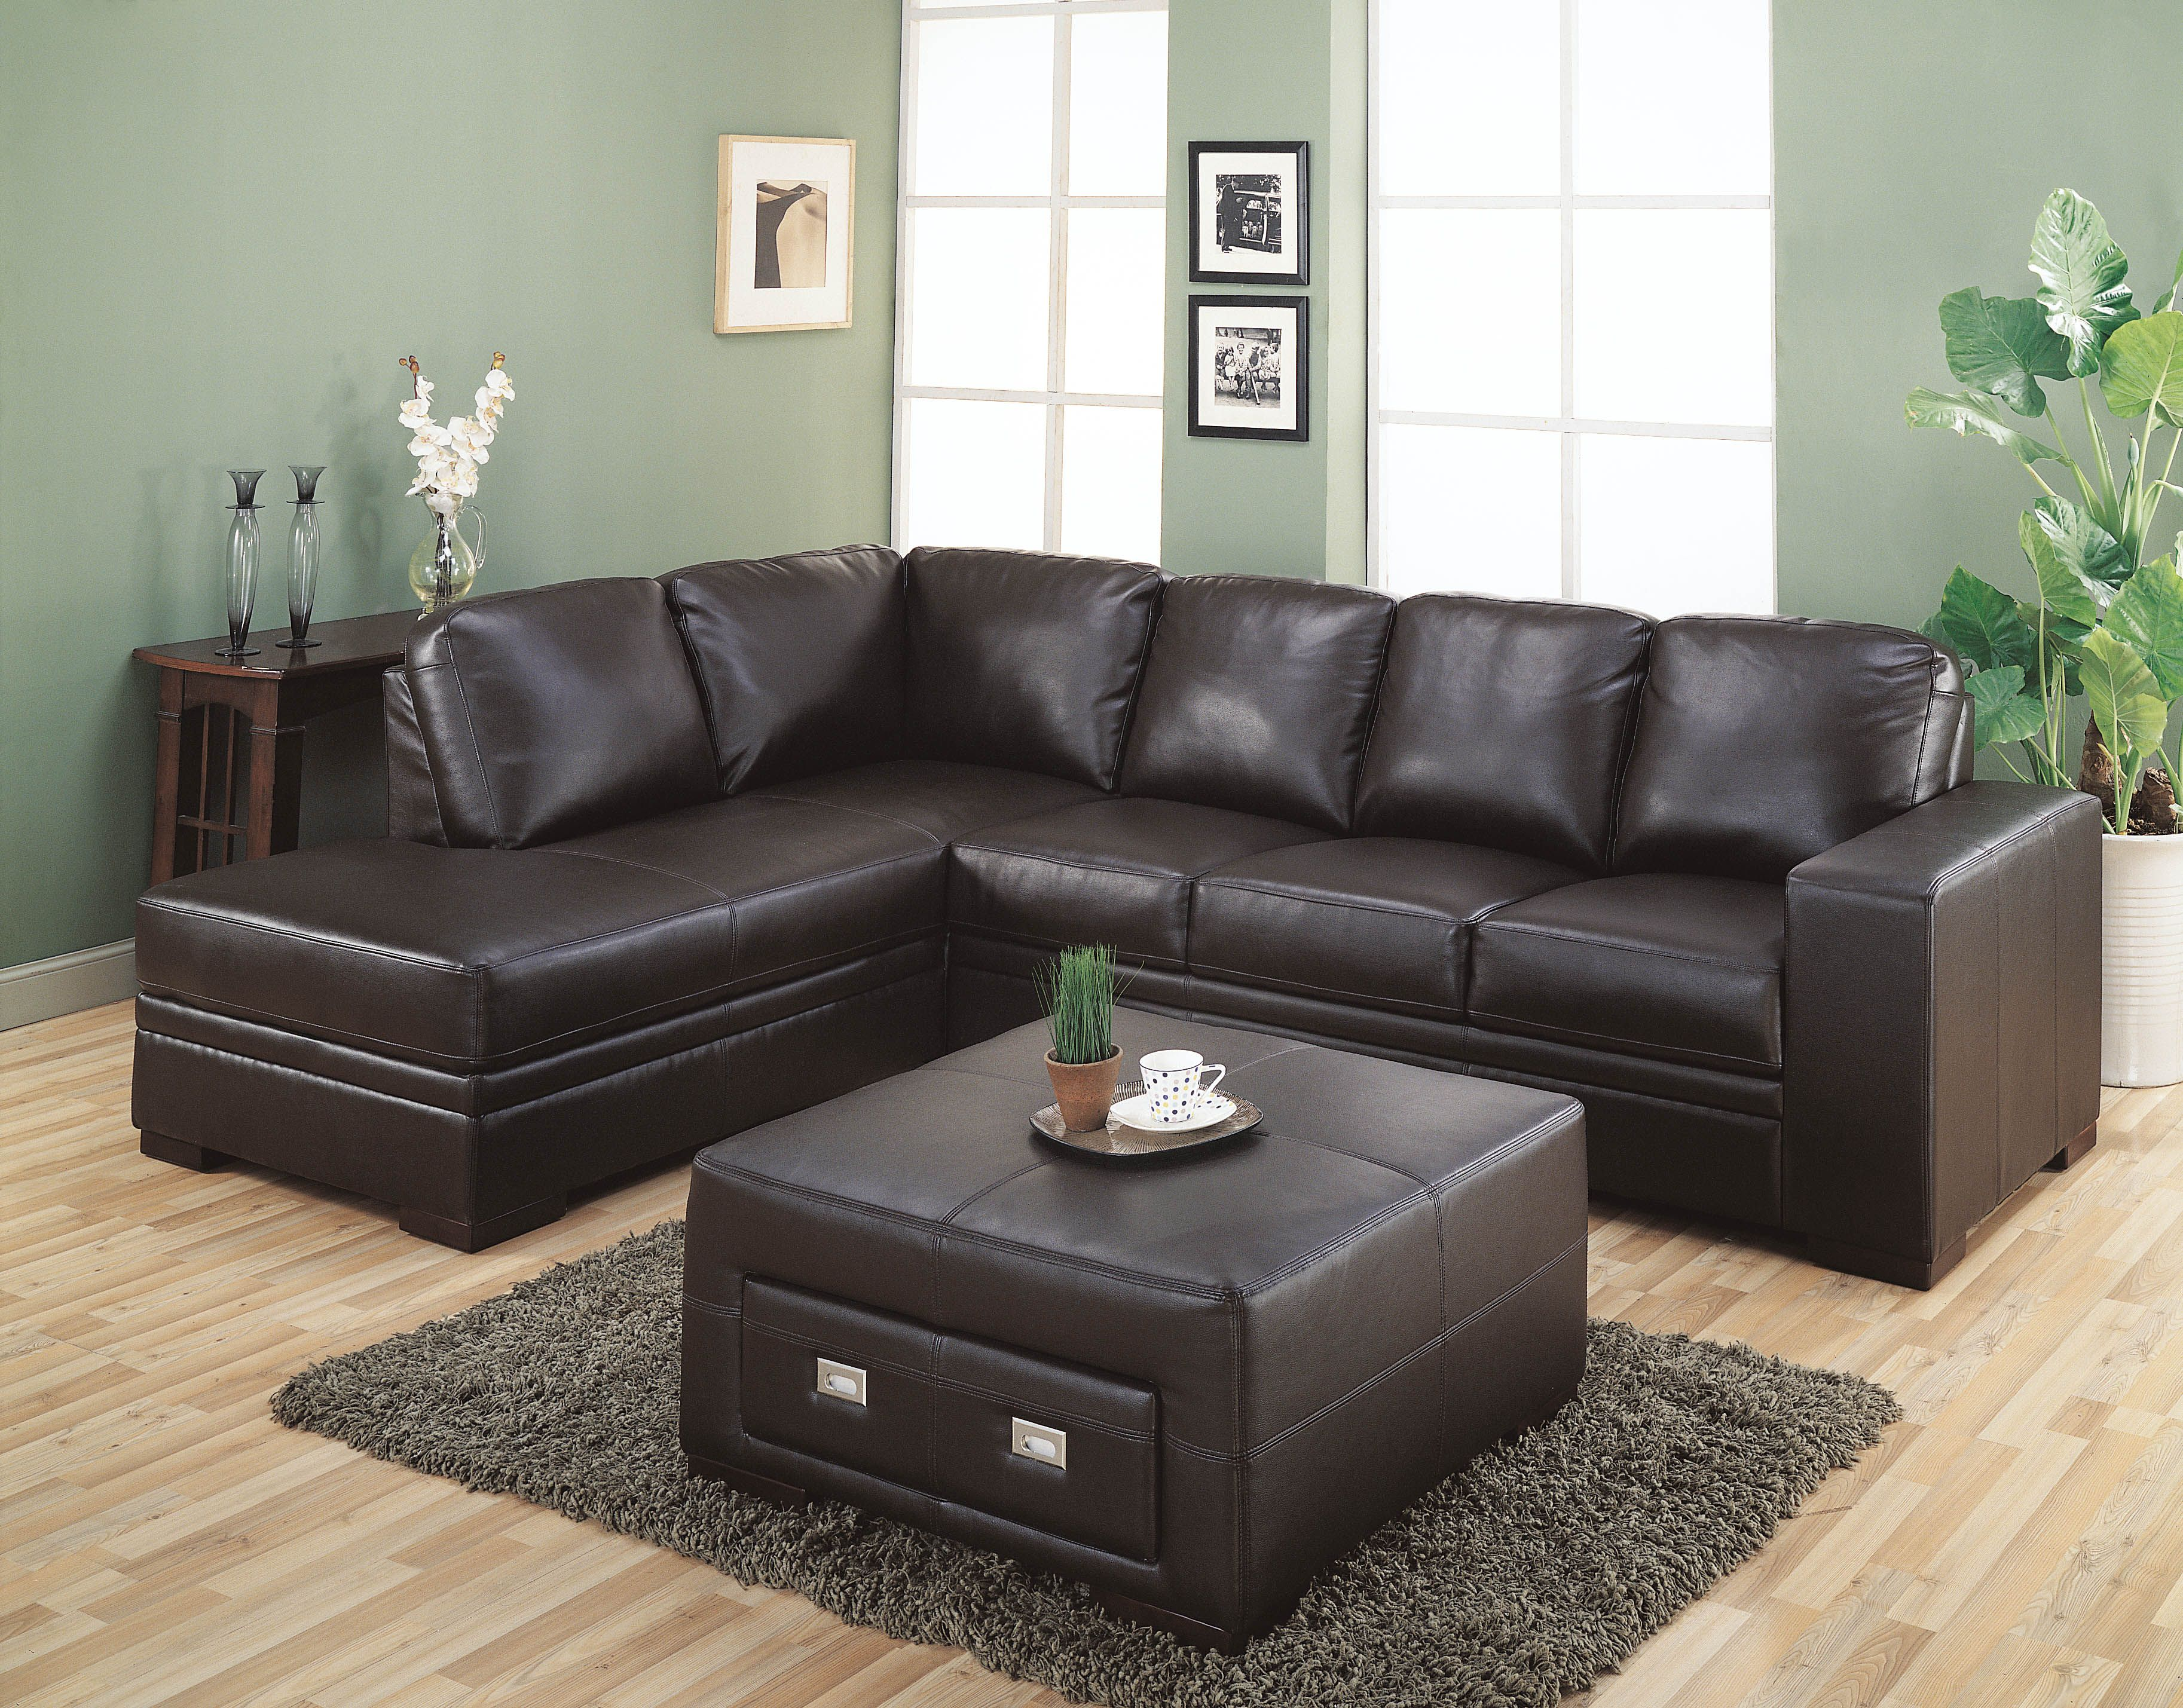 Very Popular Sectional Dark Brown Leather Couch With Square